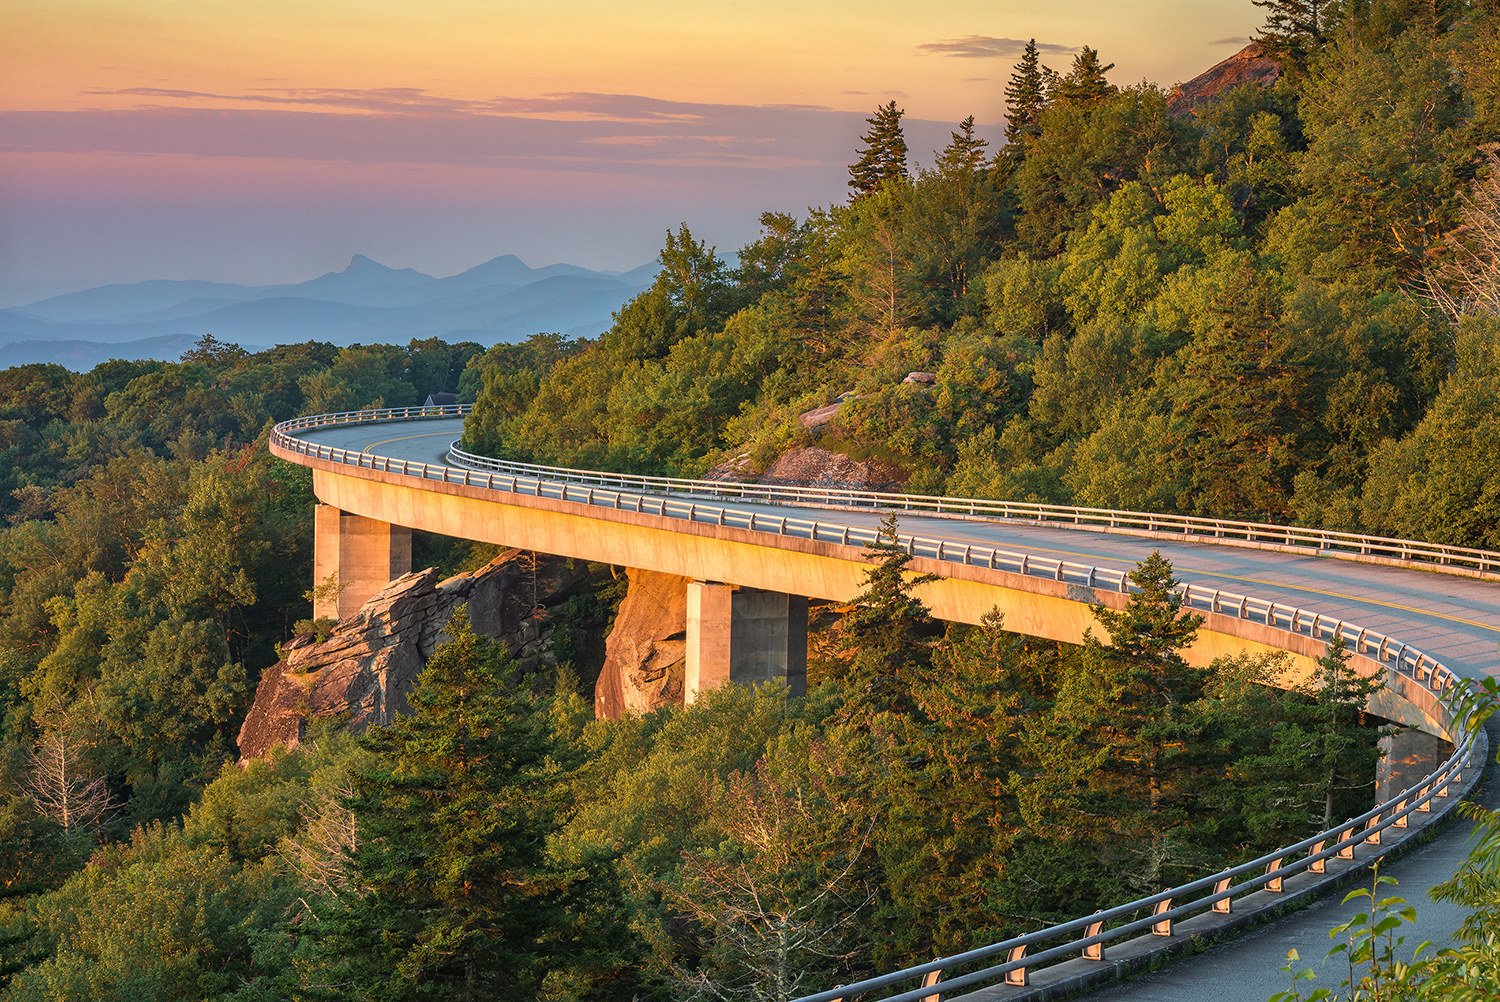 morning light spills out on the Lynn Cove viaduct along the Blue Ridge Parkway